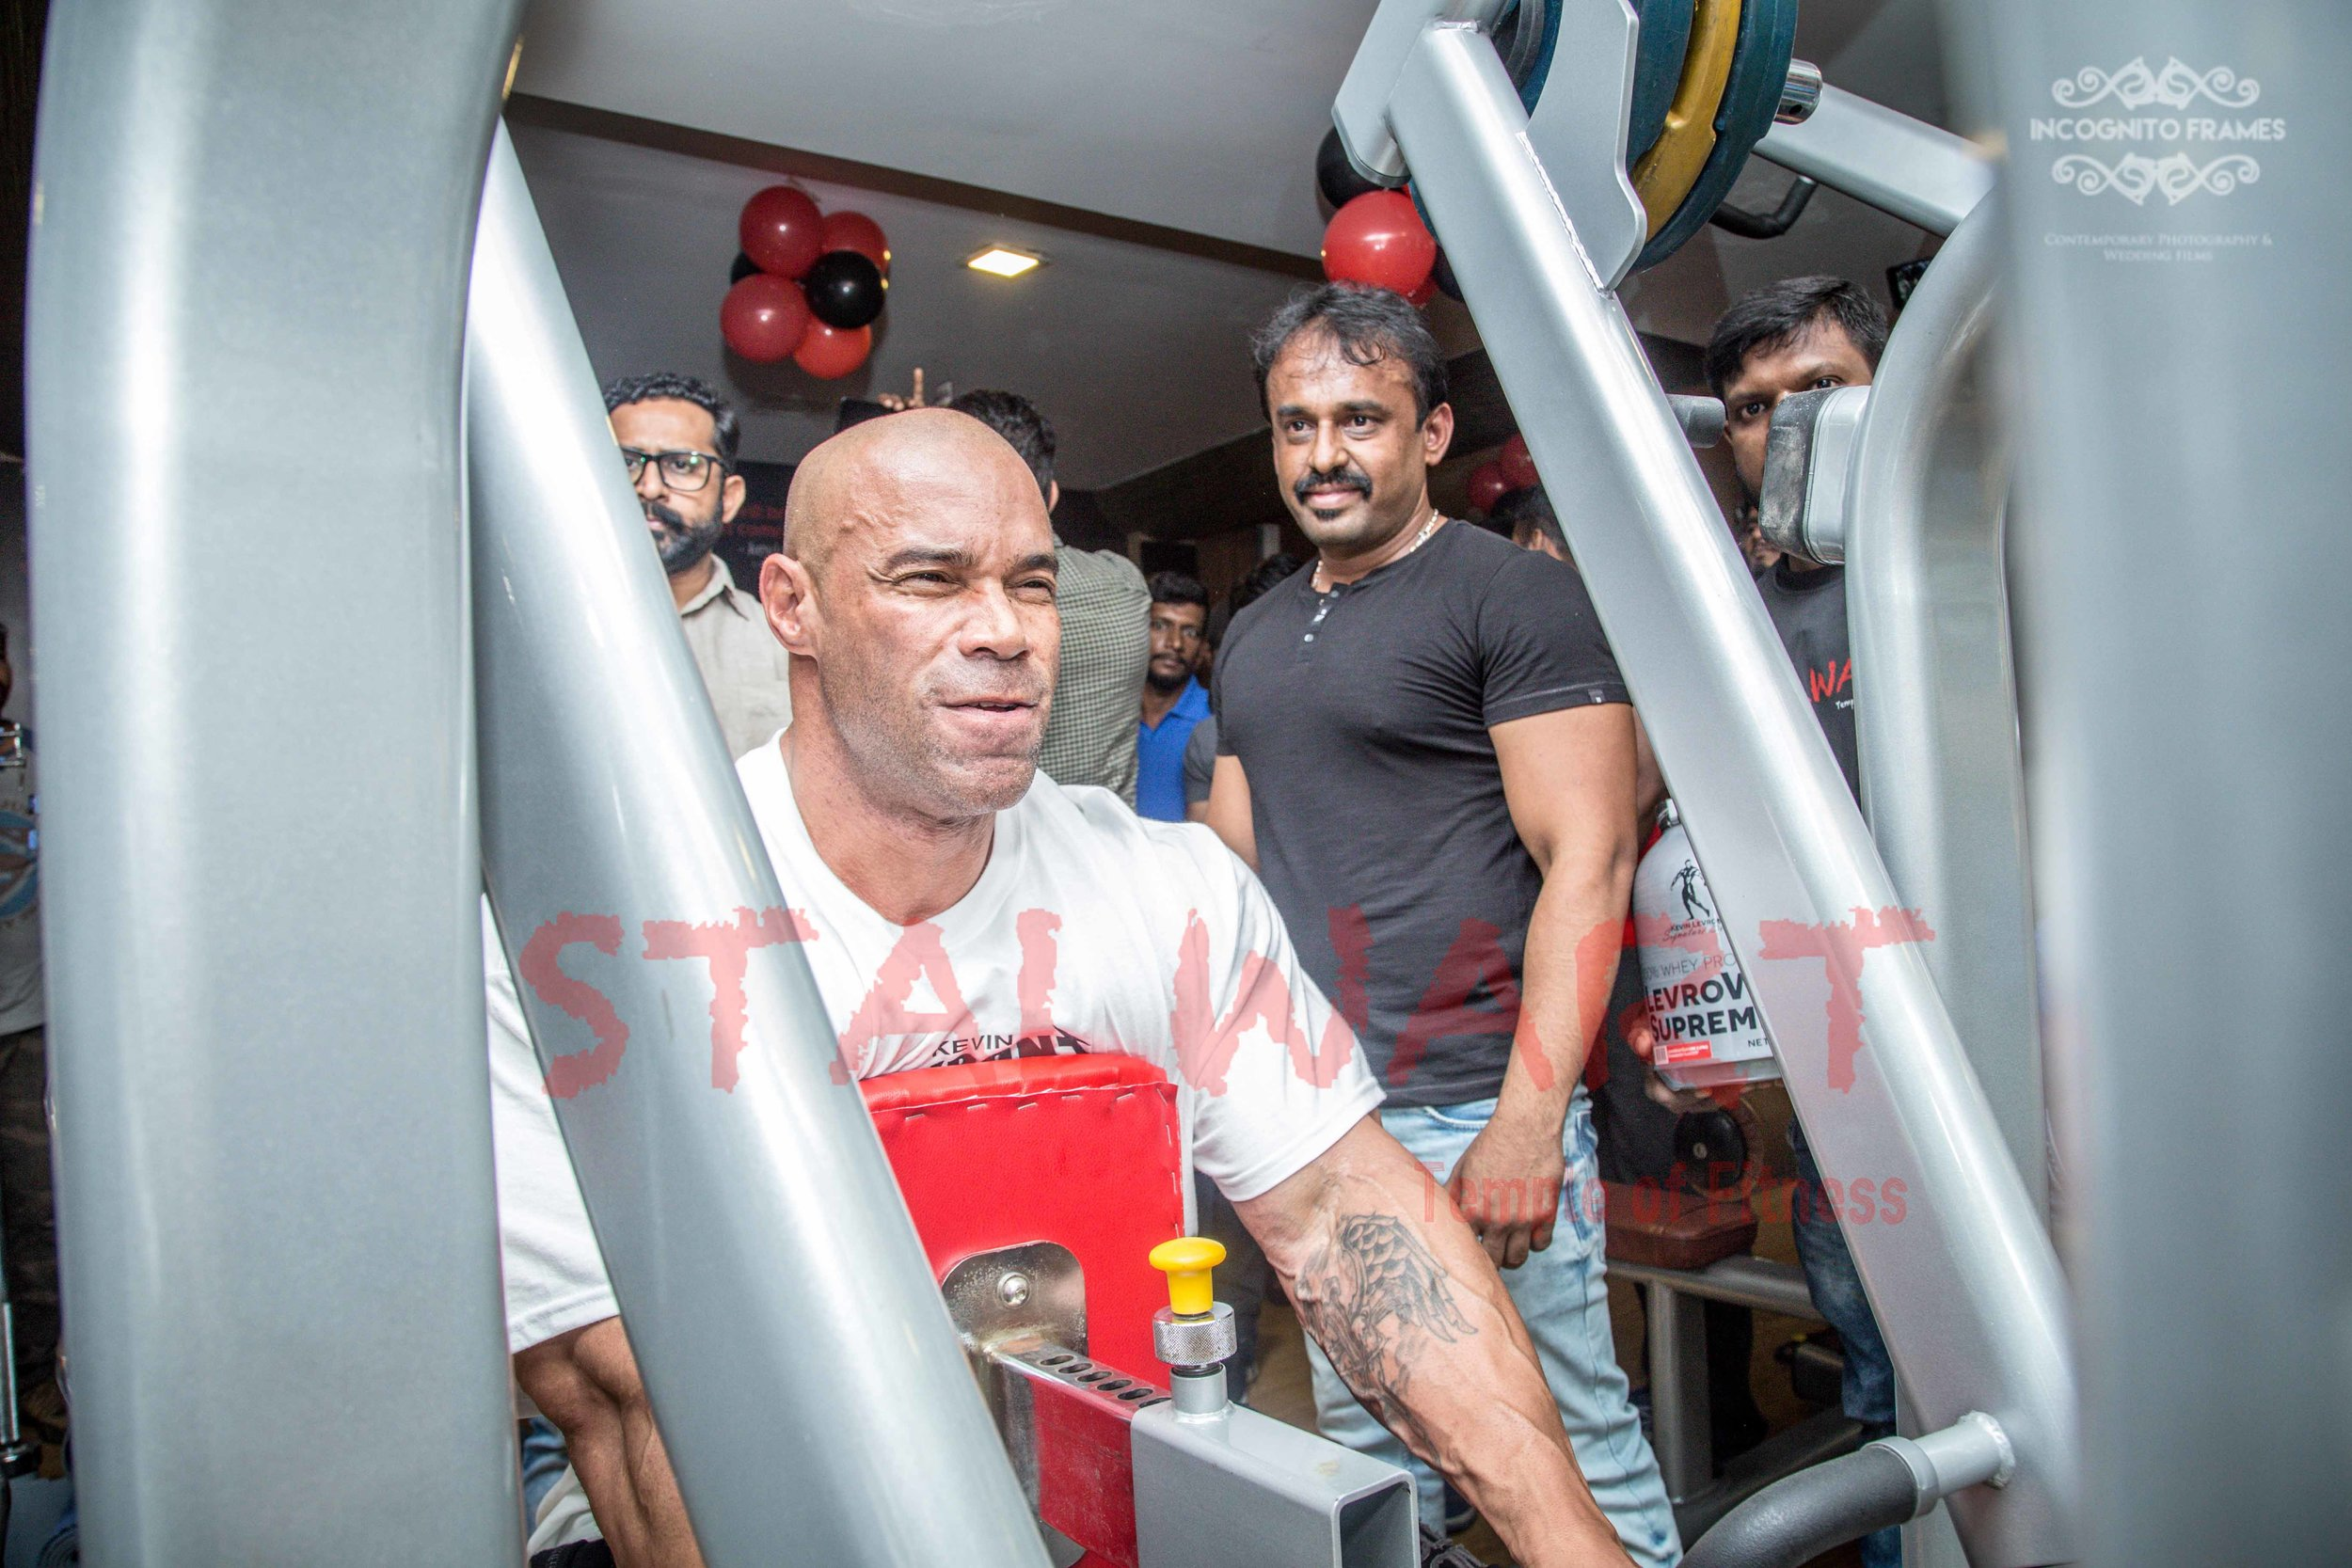 kevin-levrone-weight-training-India.jpg